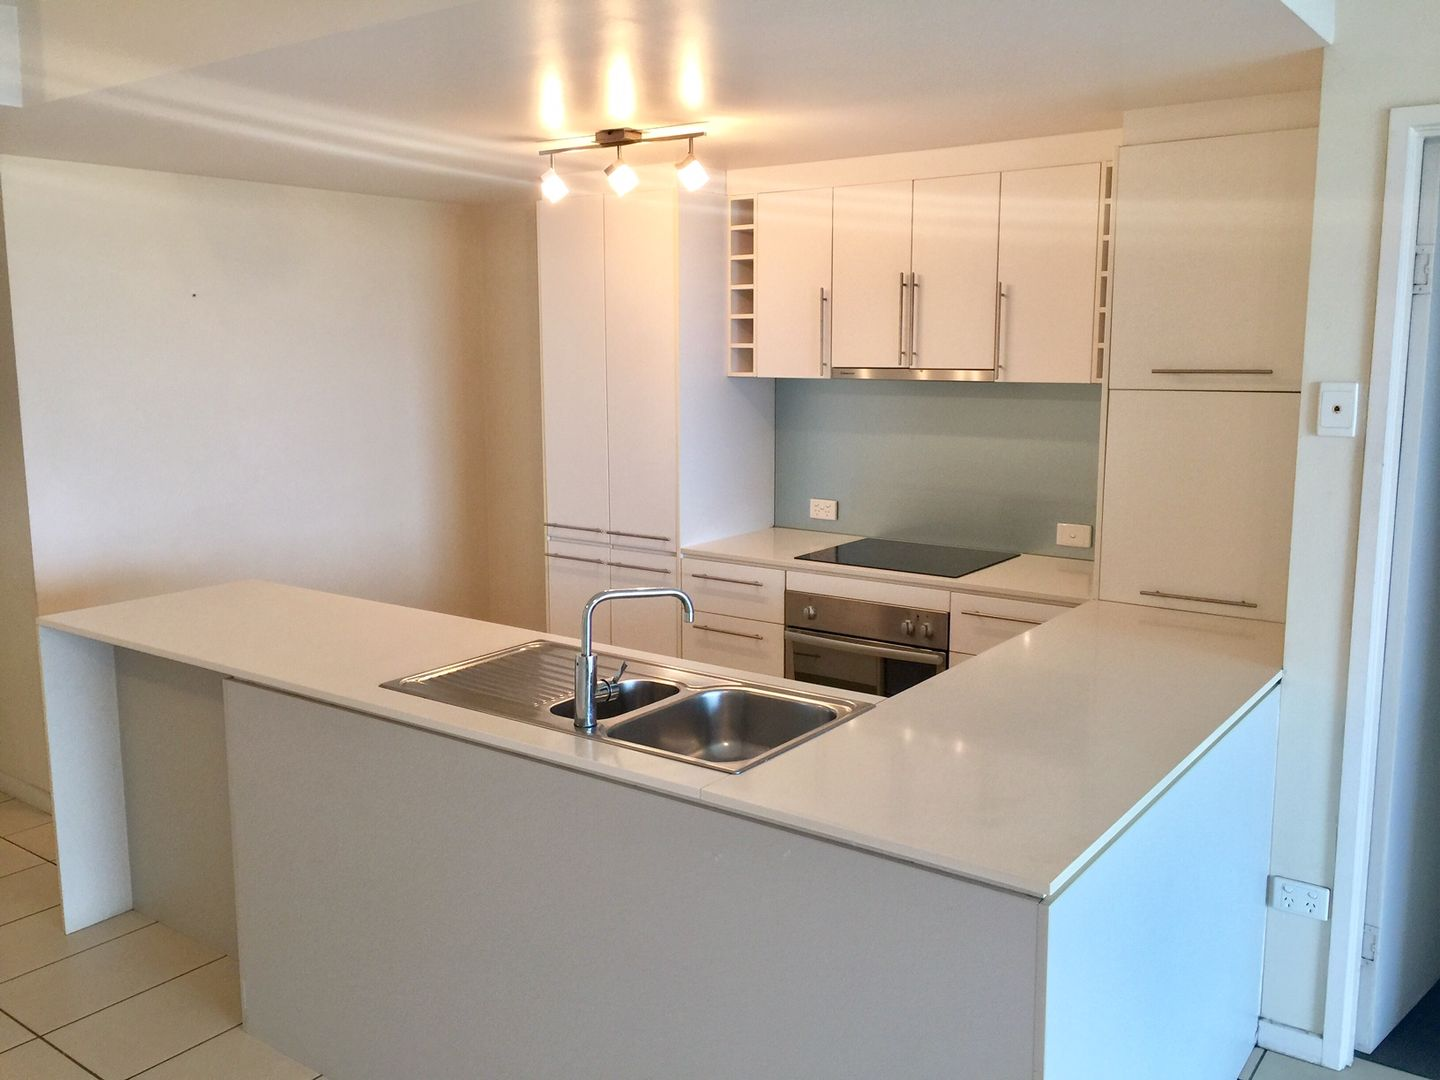 22/8-32 Stanley Street, Townsville City QLD 4810, Image 0